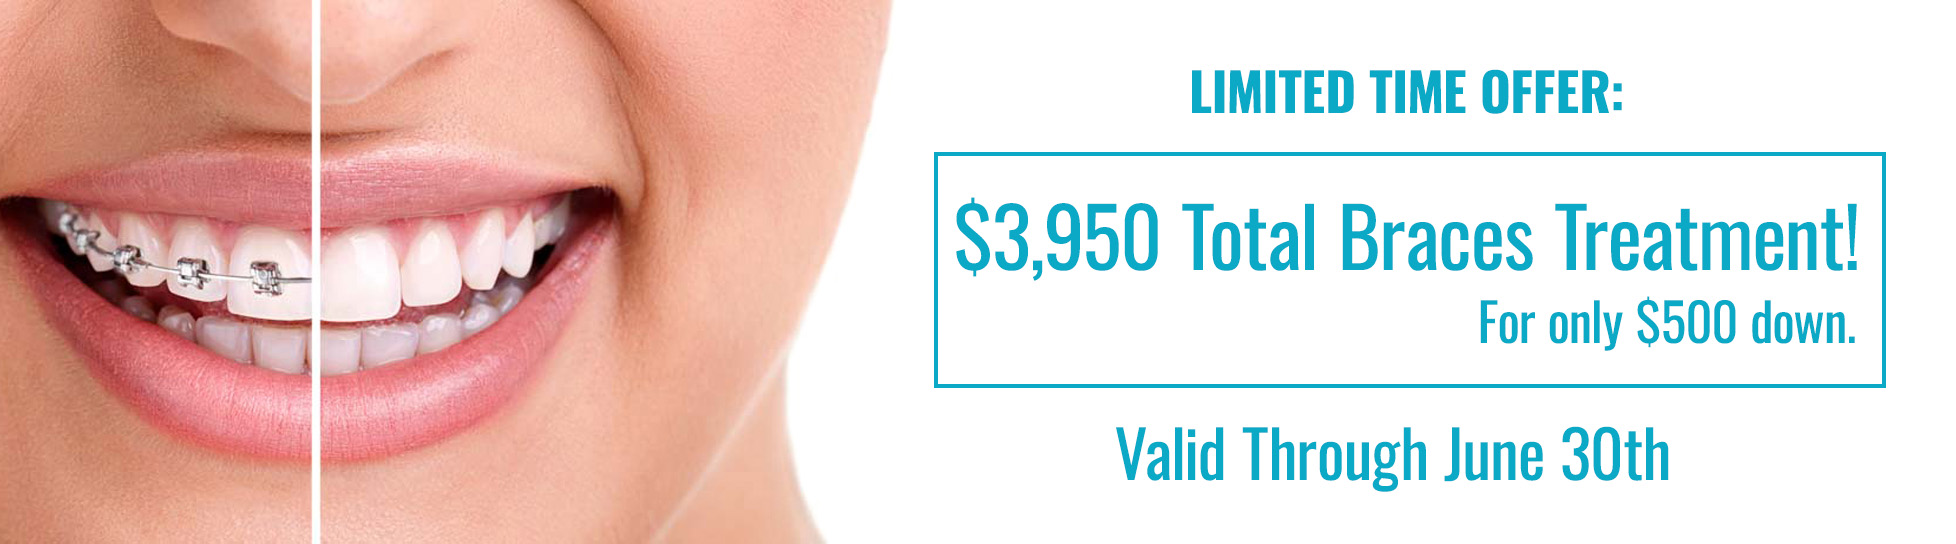 Cheap Braces for only $3950 Treatment